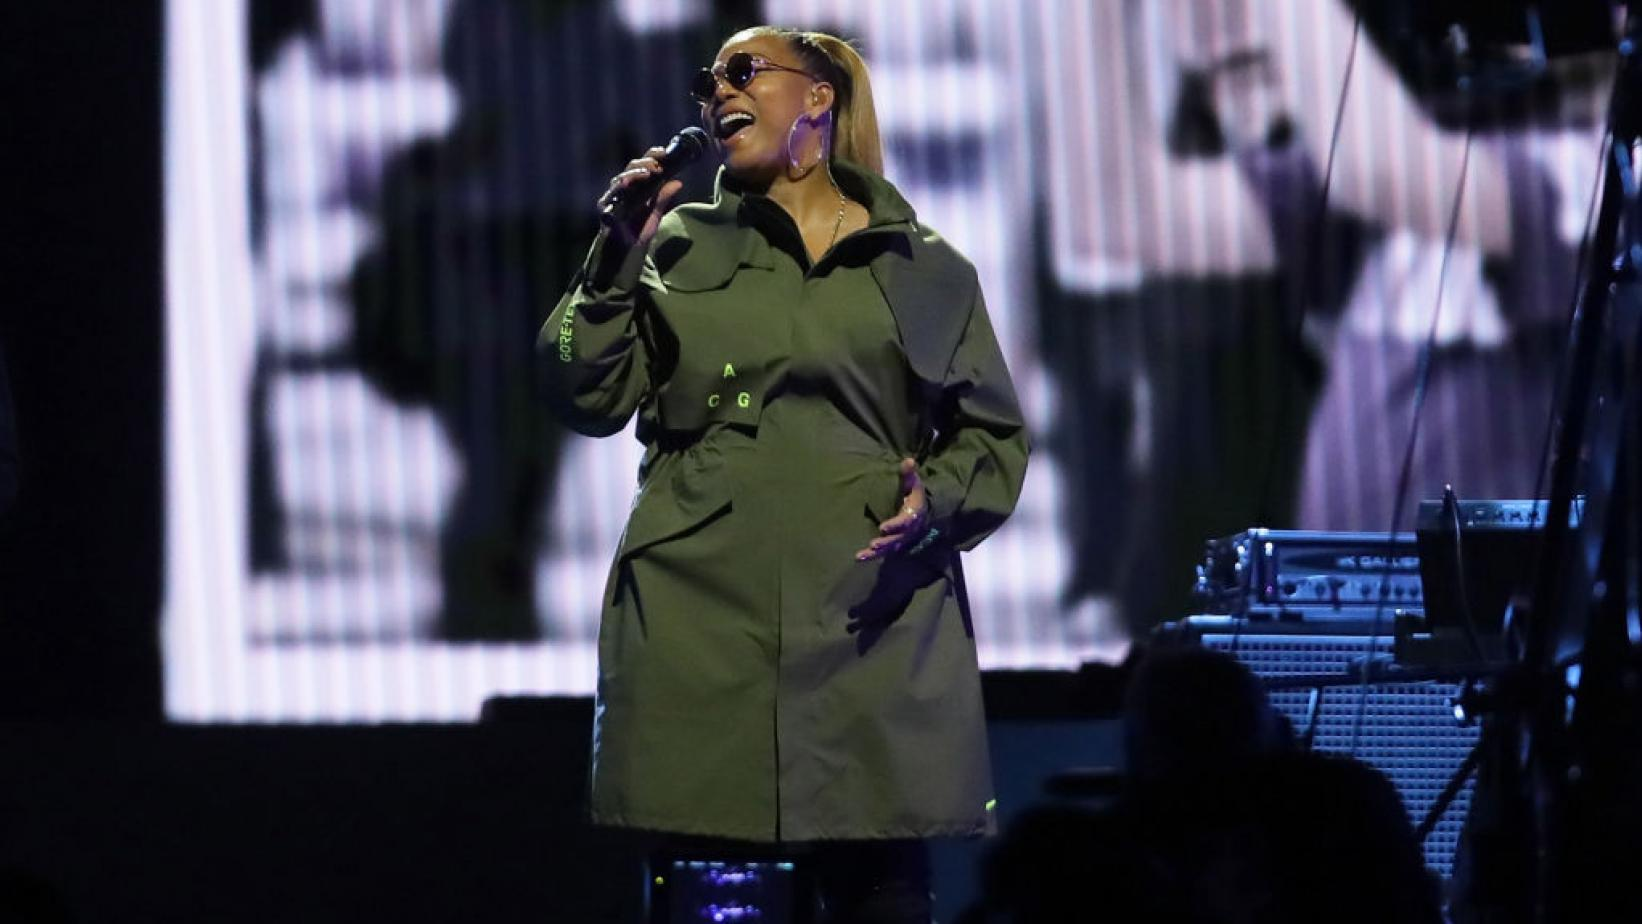 Queen Latifah performs during the2020 NBA All-Star Weekend